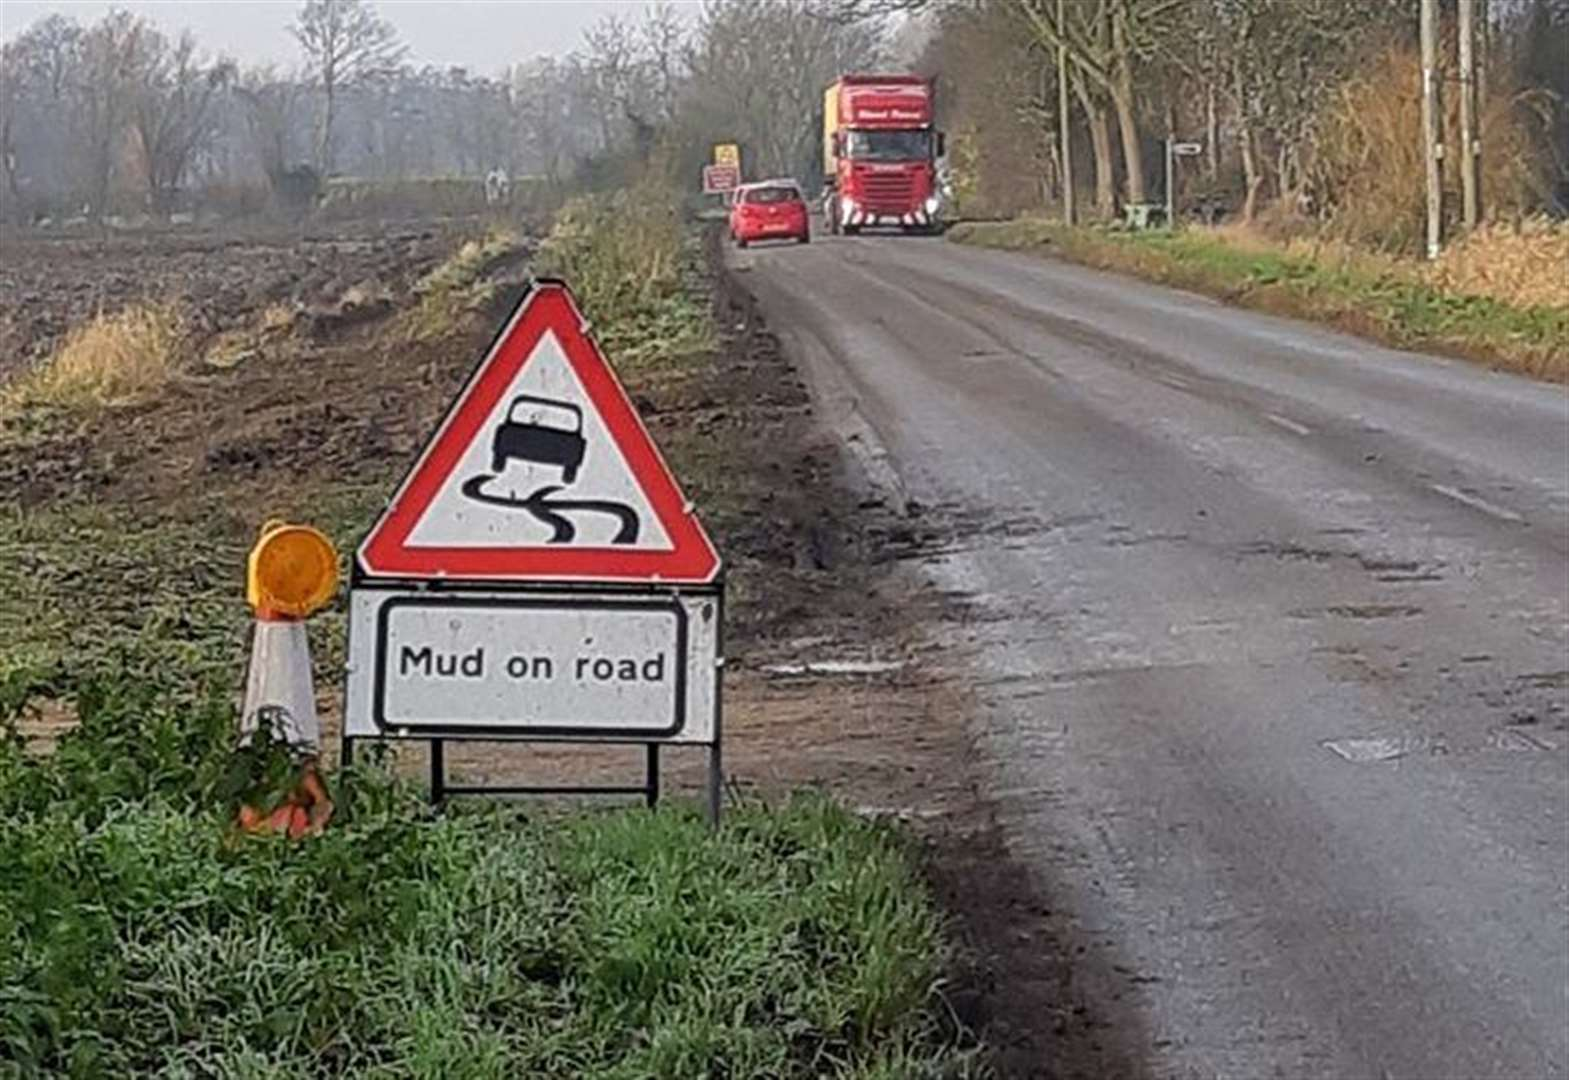 Take it steady warning from police over mud on busy Wisbech road